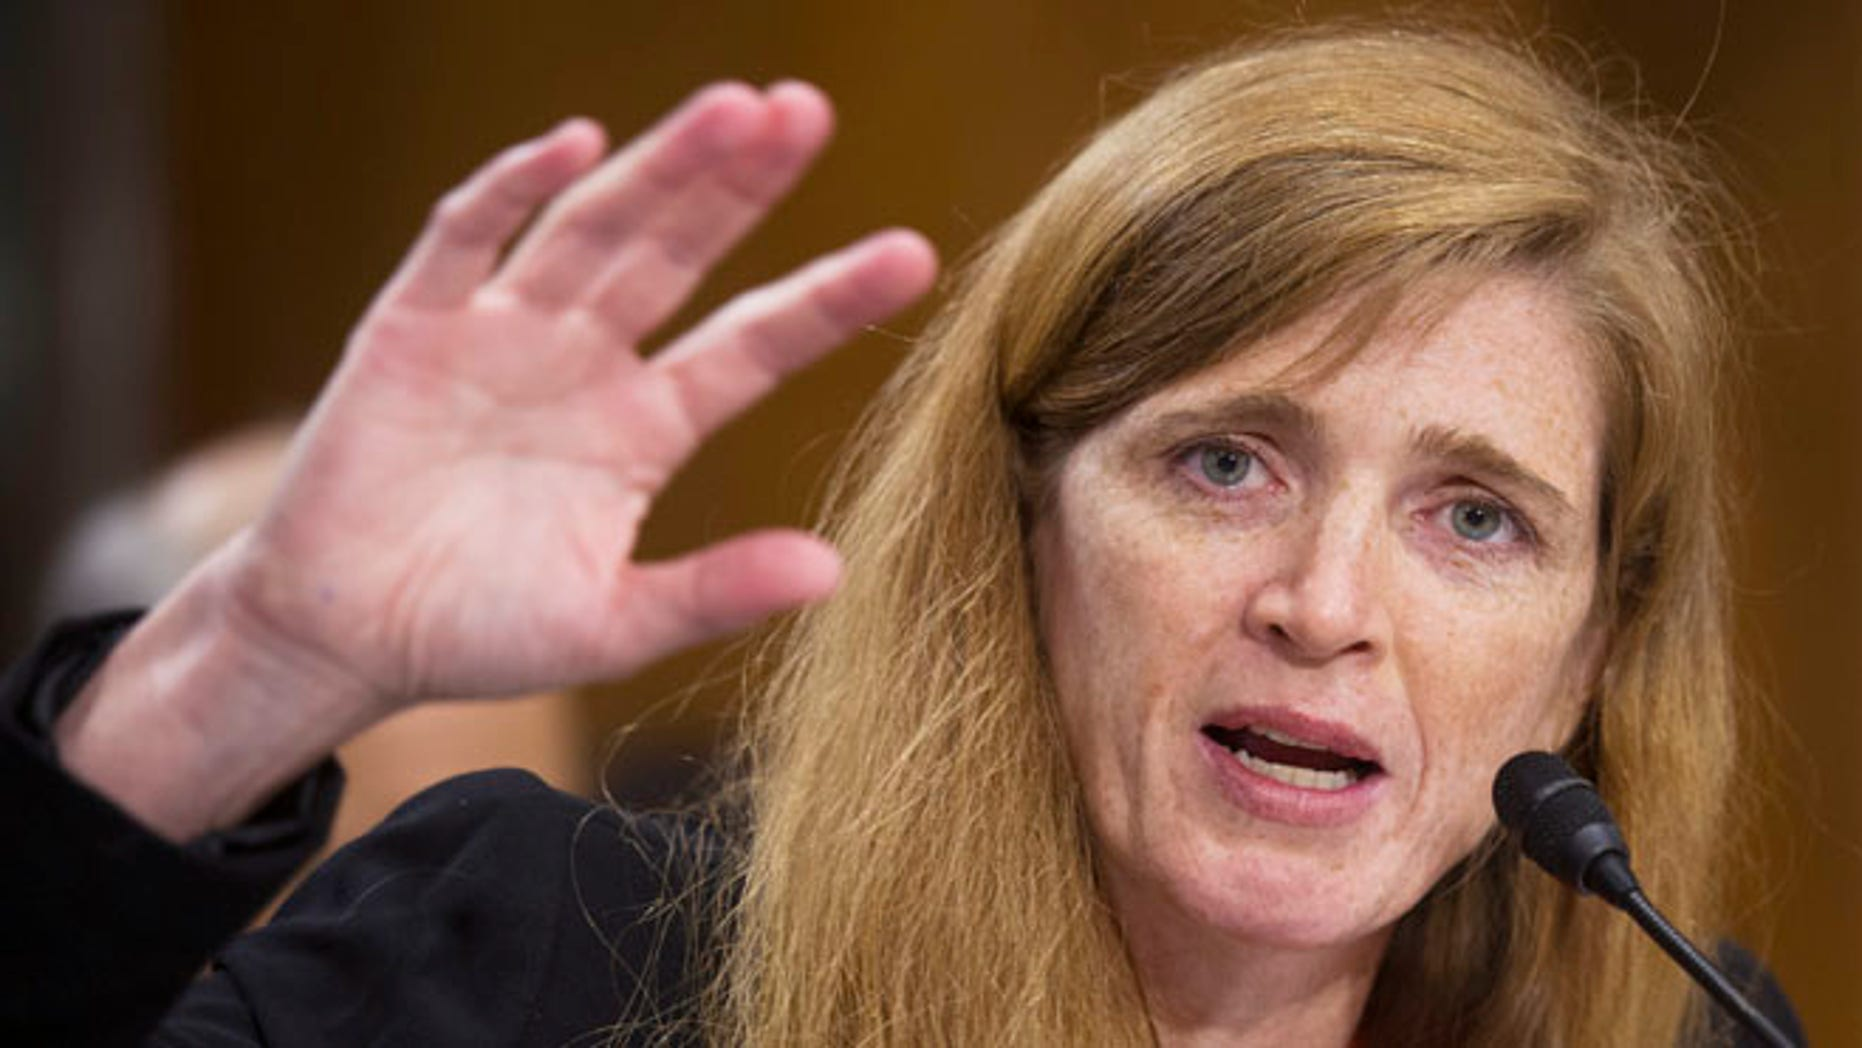 July 17, 2013: U.S. ambassador to the U.N. nominee Samantha Power testifies at her confirmation hearing before the Senate Foreign Relations Committee in Washington.